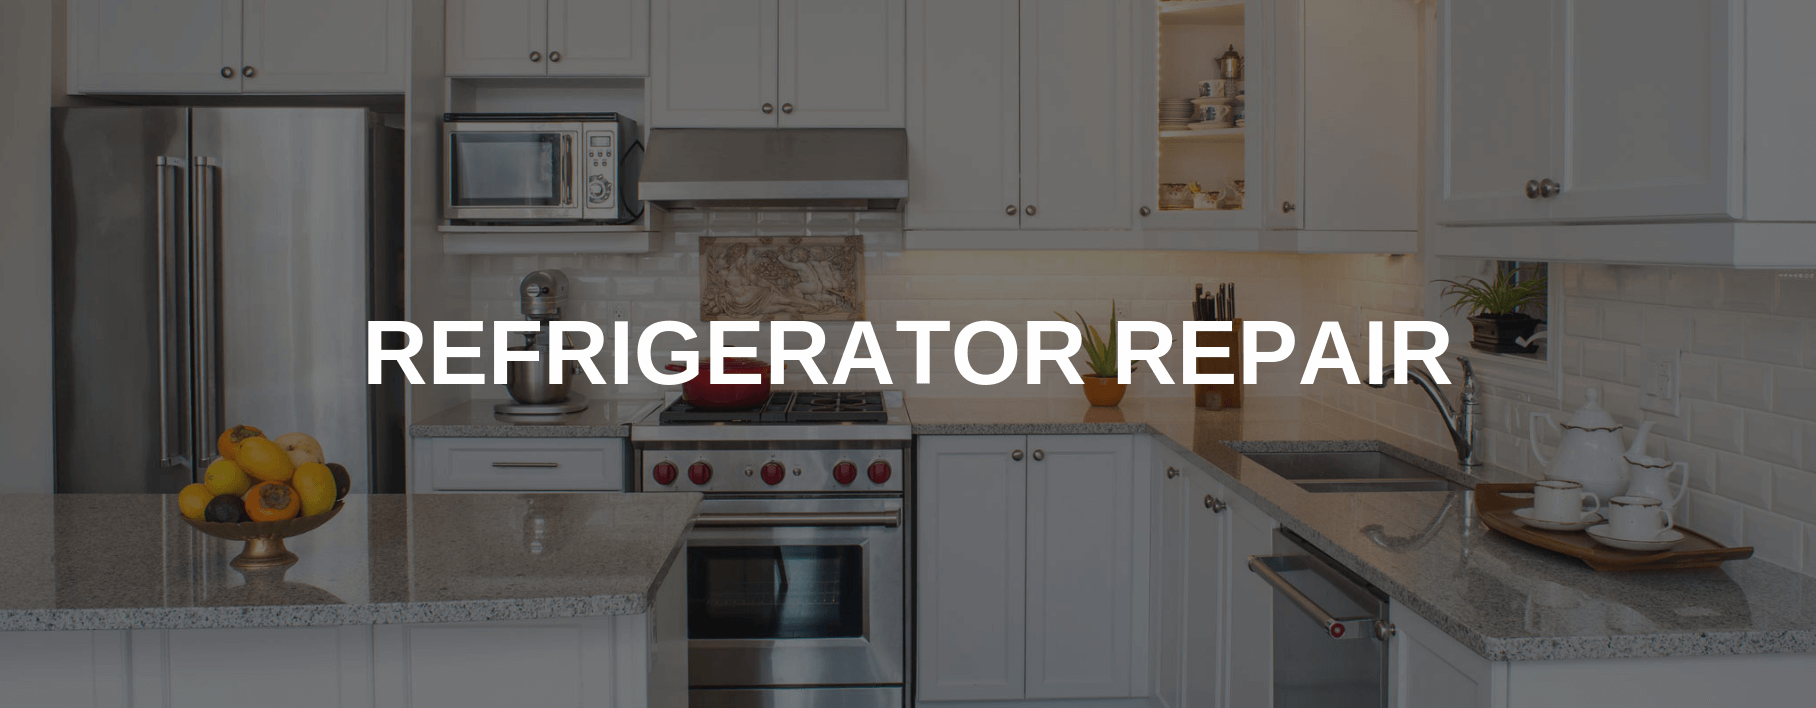 quincy refrigerator repair